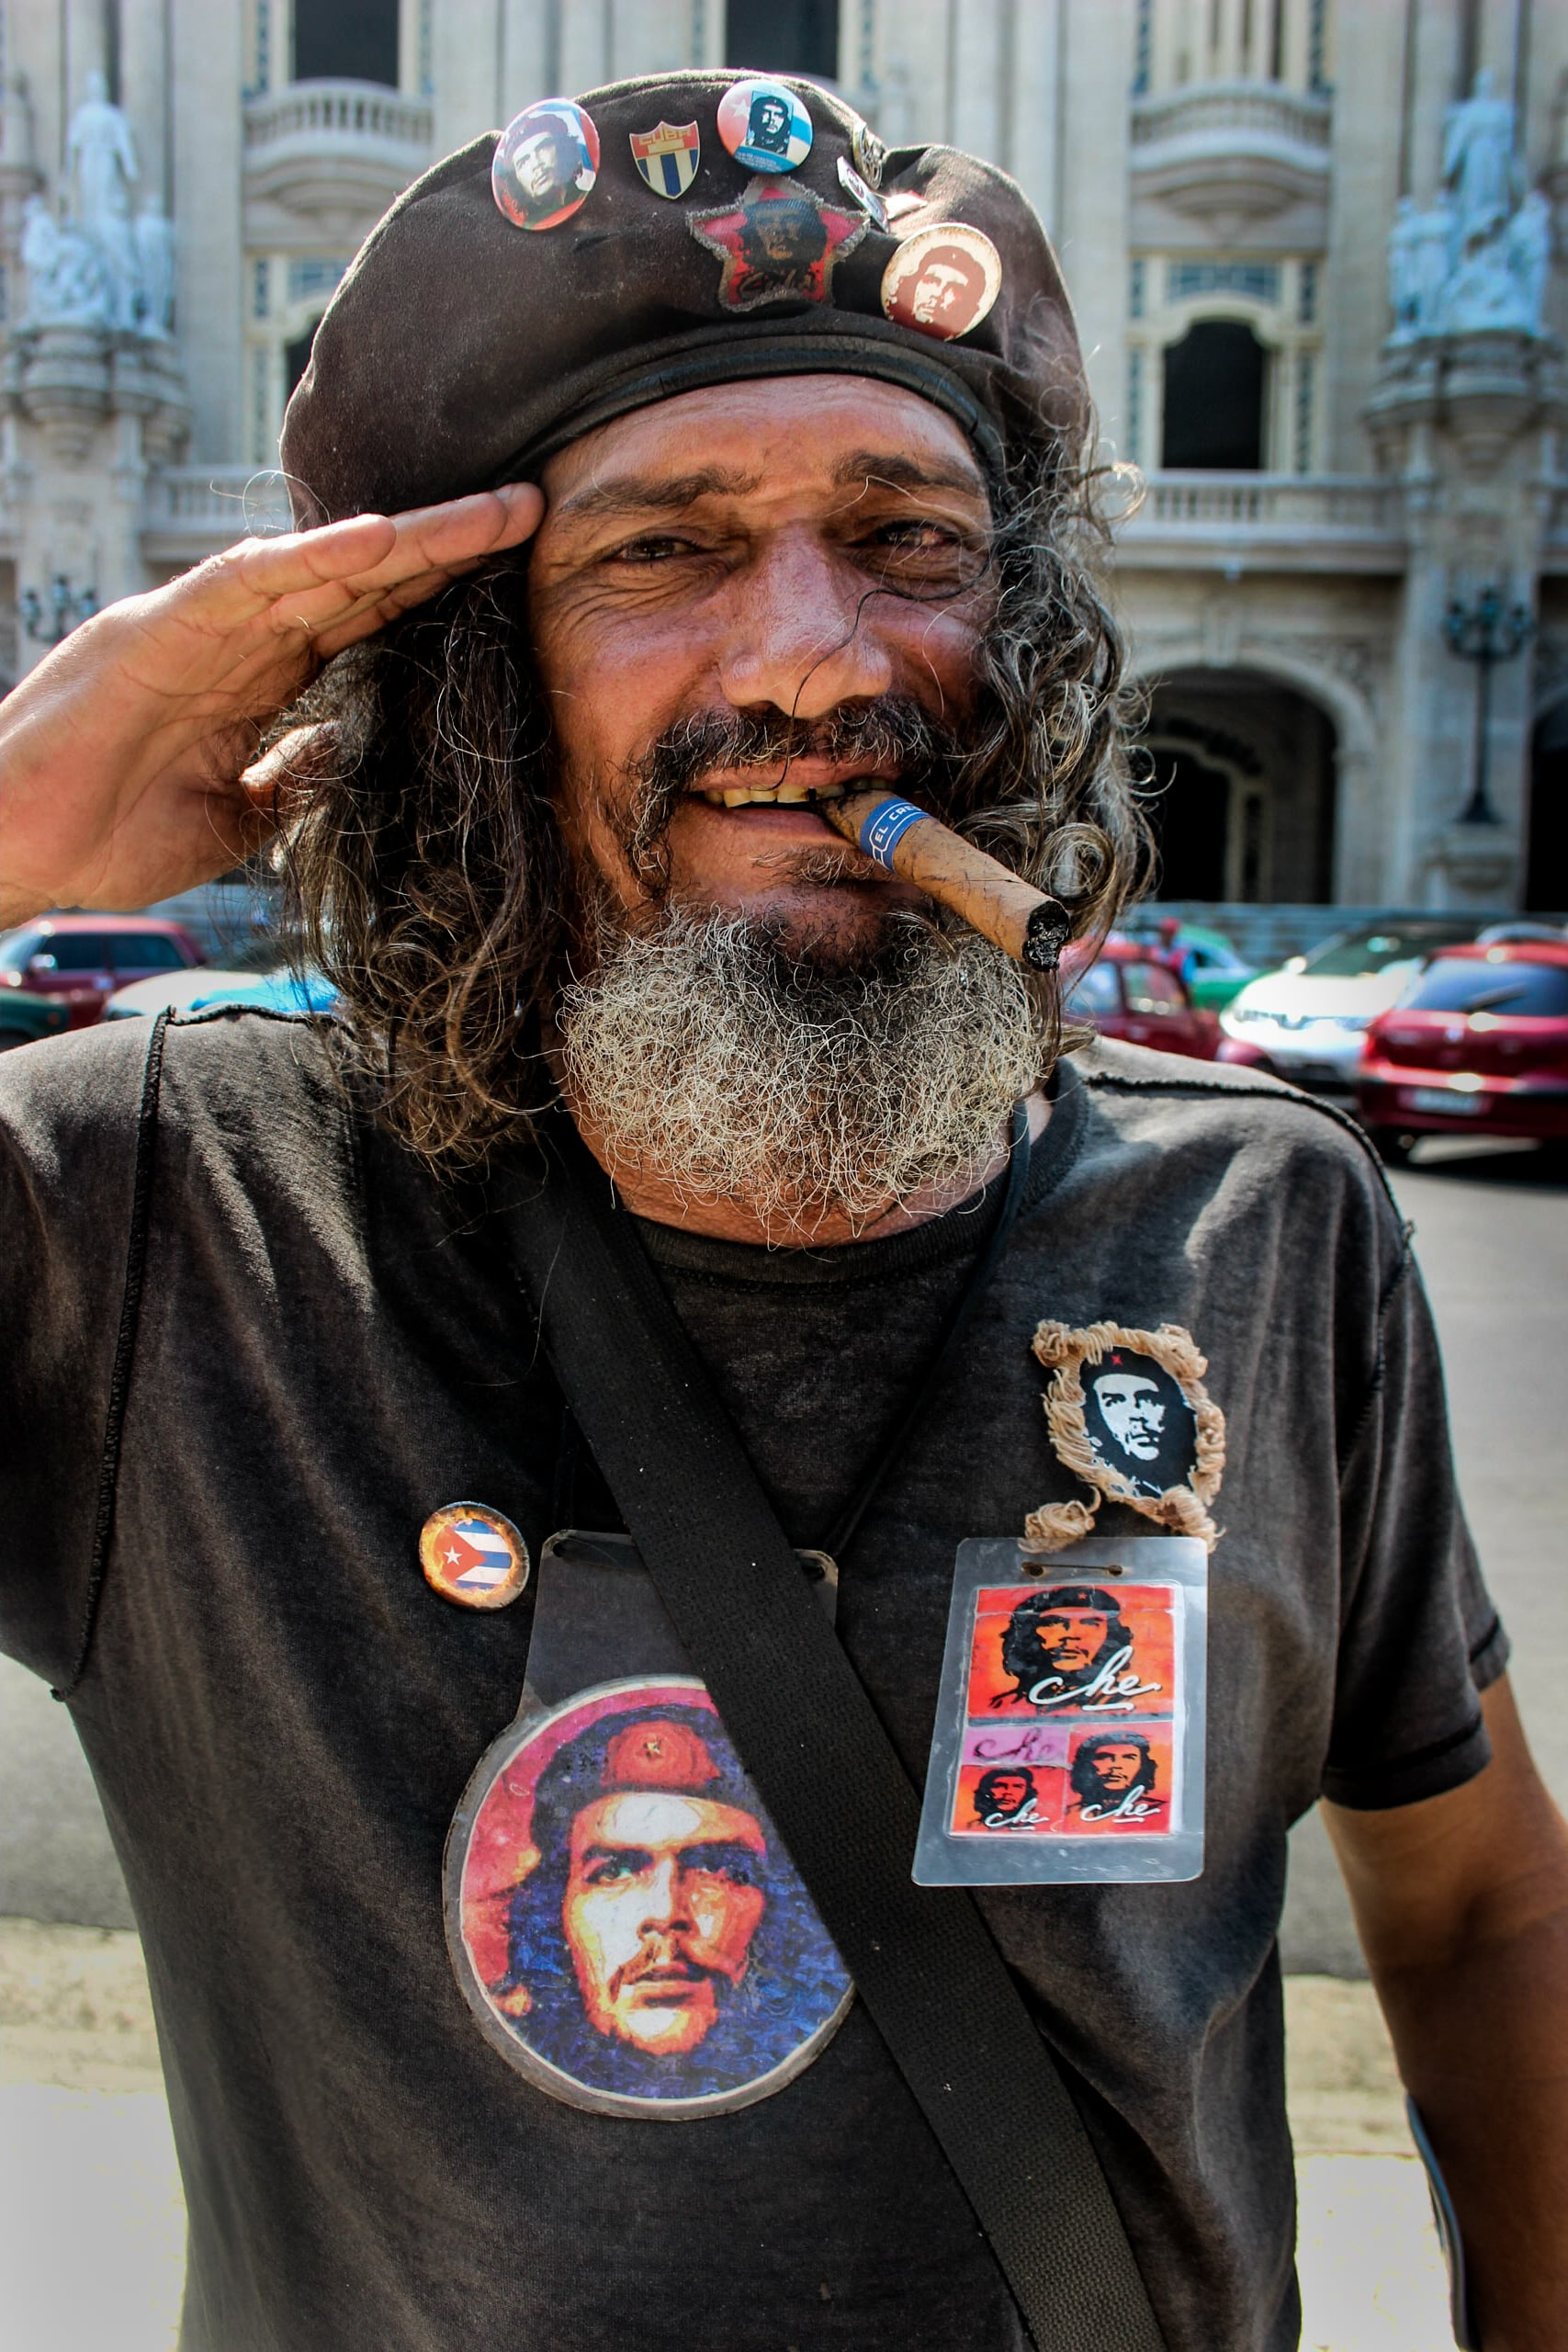 """Man makes his living charging tourists for photos while he poses with a cigar and pictures of national revolutionary icon, Ernesto """"Ché"""" Guevara.    In Cuba, salaries are fixed by the government and people are provided monthly goods rations. Working in tip-based tourism (taxi drivers, bicycle tour guides, hotel lobbyists) will often earn Cubans a higher income compared to that of a doctor or engineer.    The picture earned this gentleman 1CUP (1 US dollar)."""